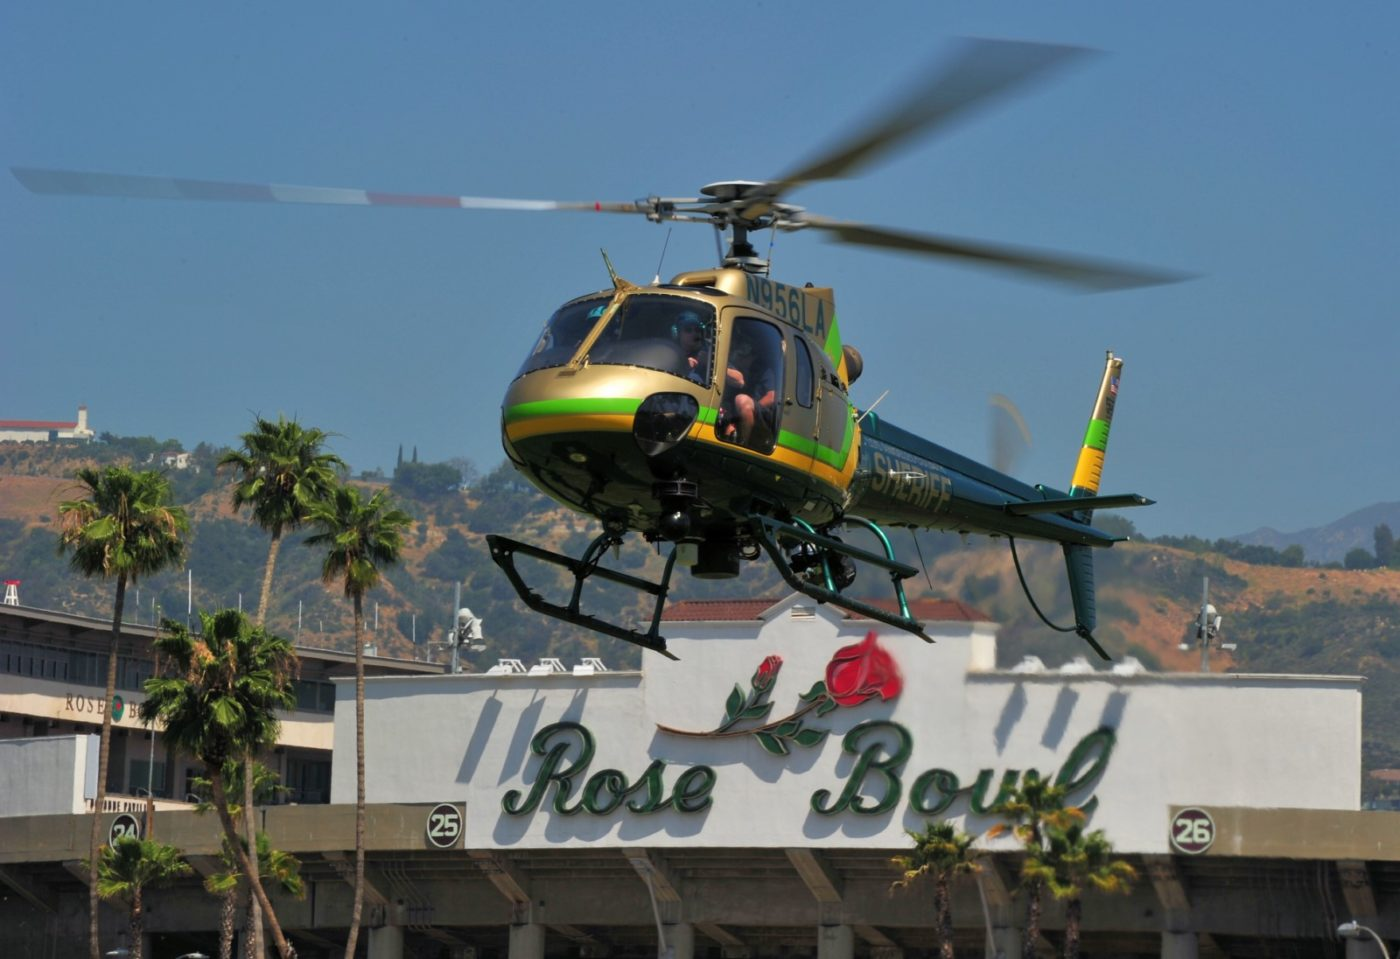 An L.A. County Sheriff's Department AStar arrives at the Rose Bowl.